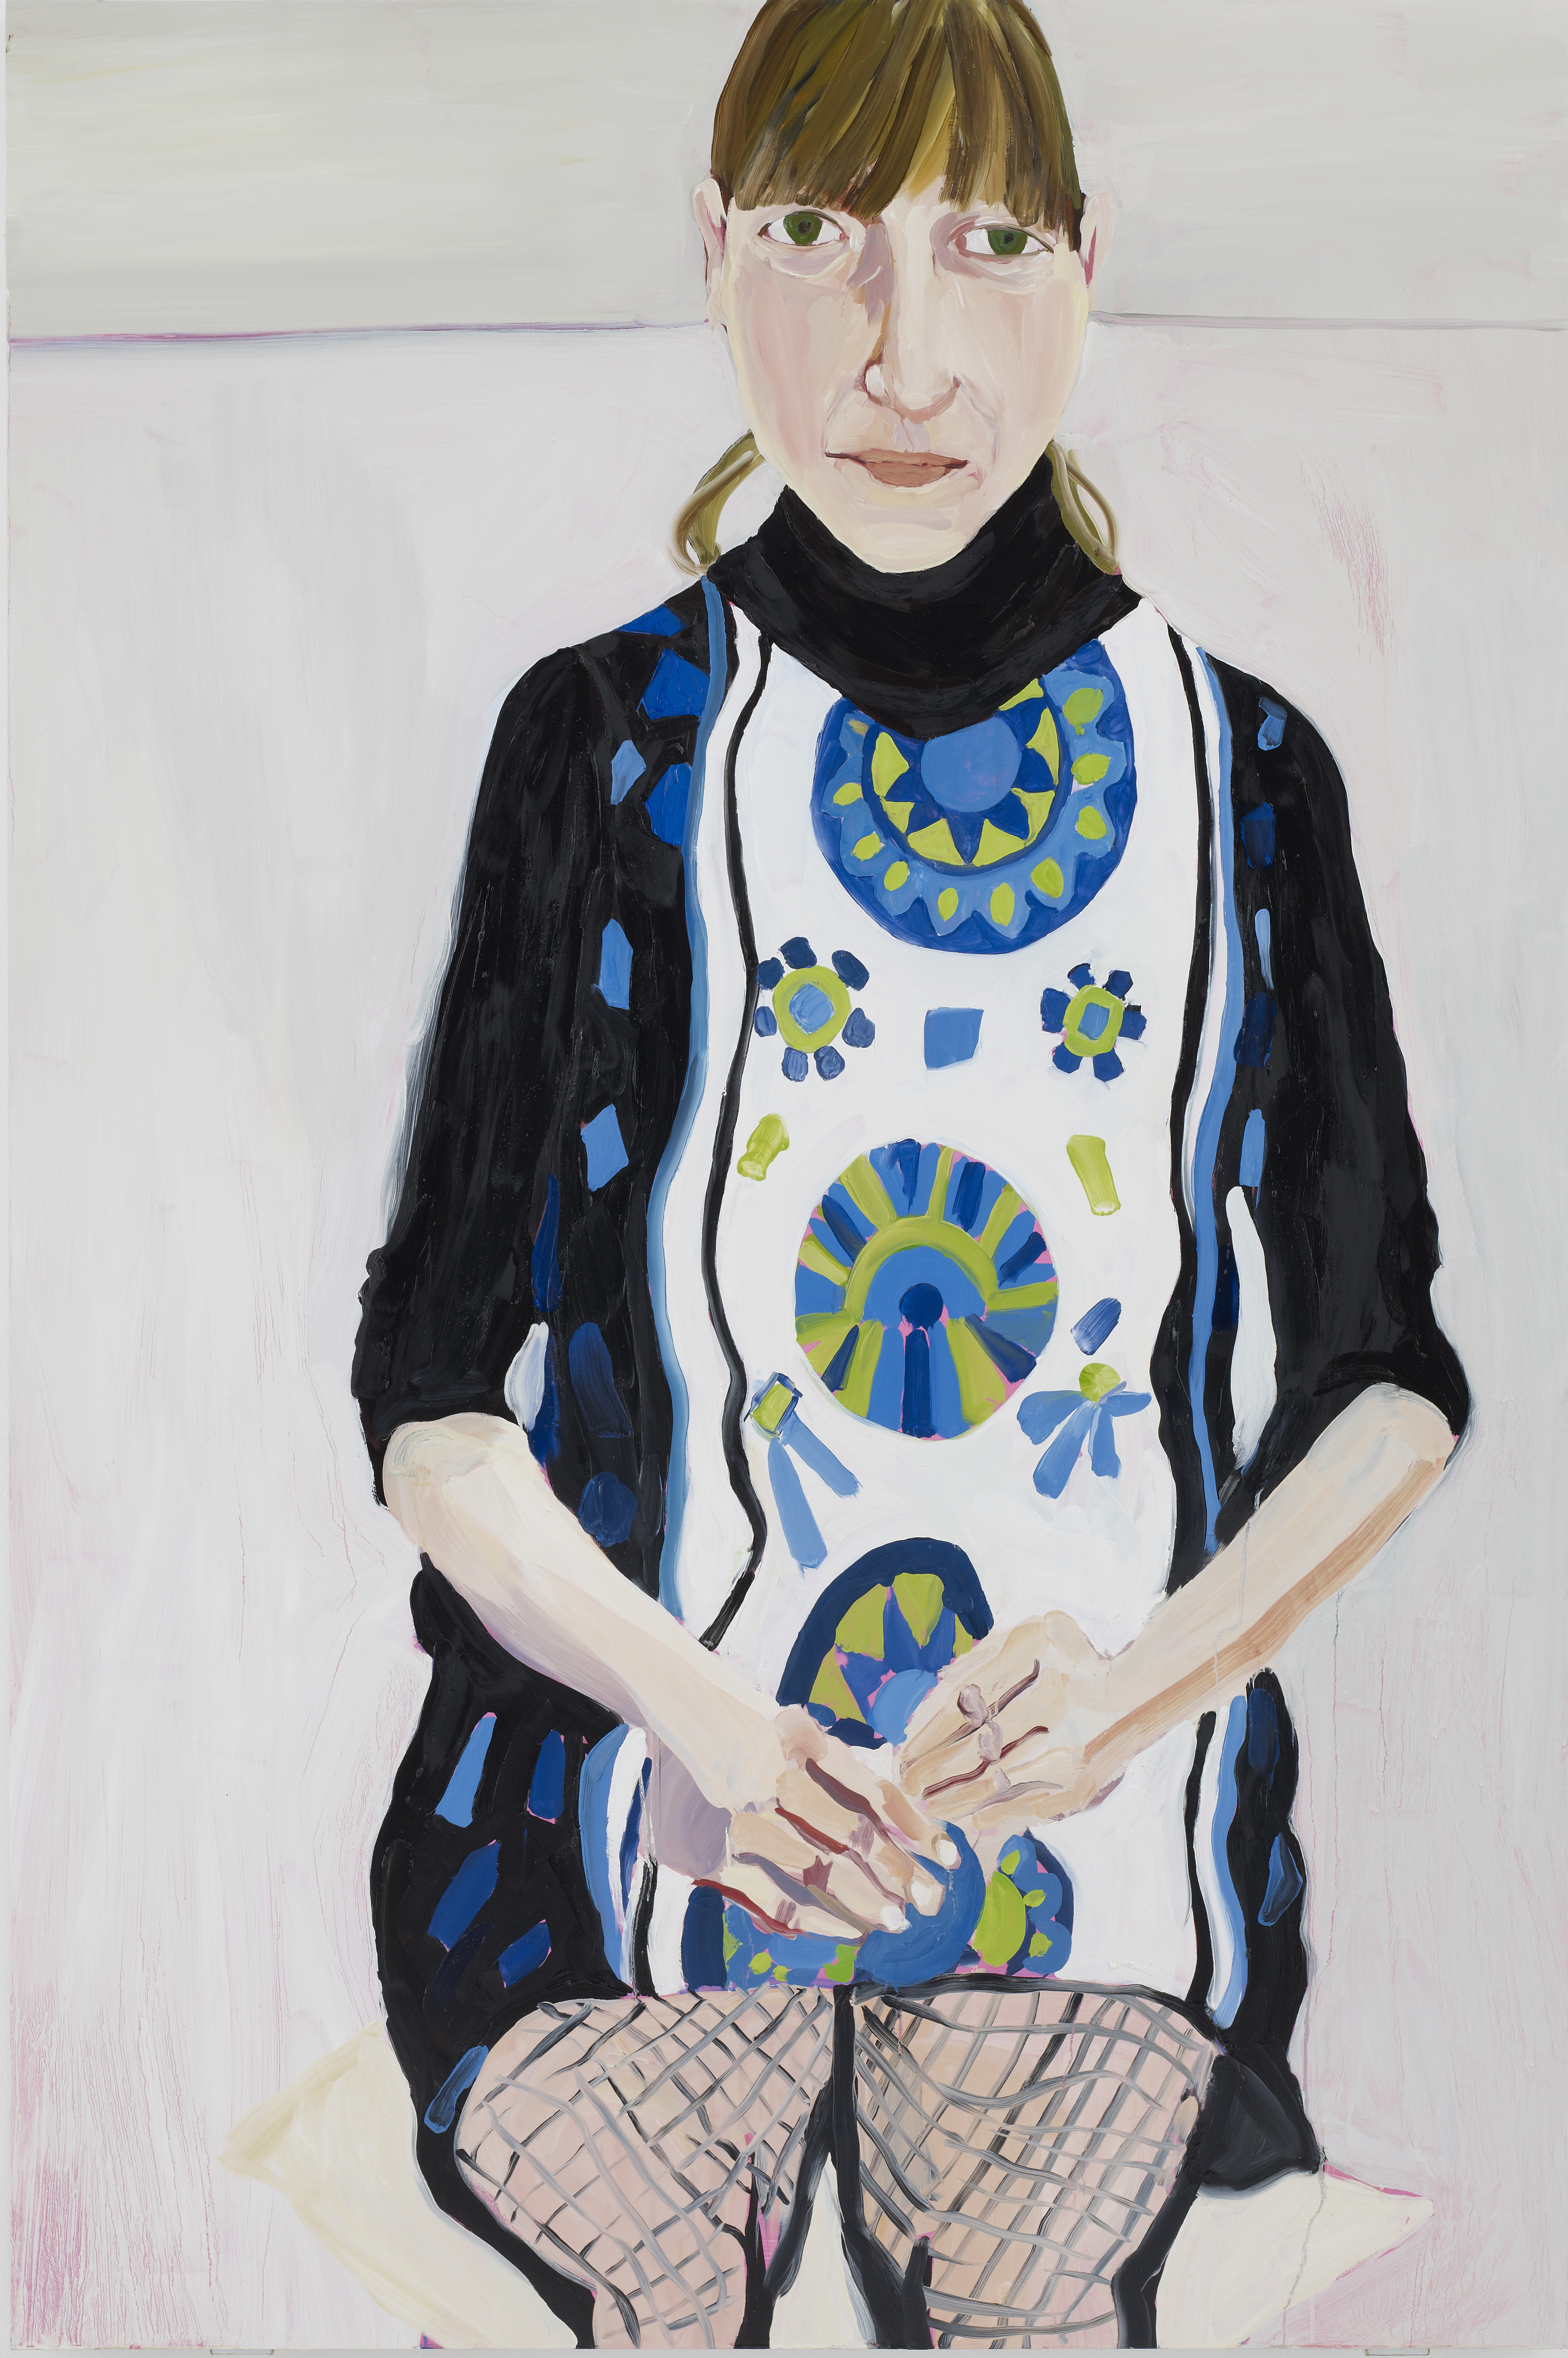 Chantal Joffe - Sally in Fishnets